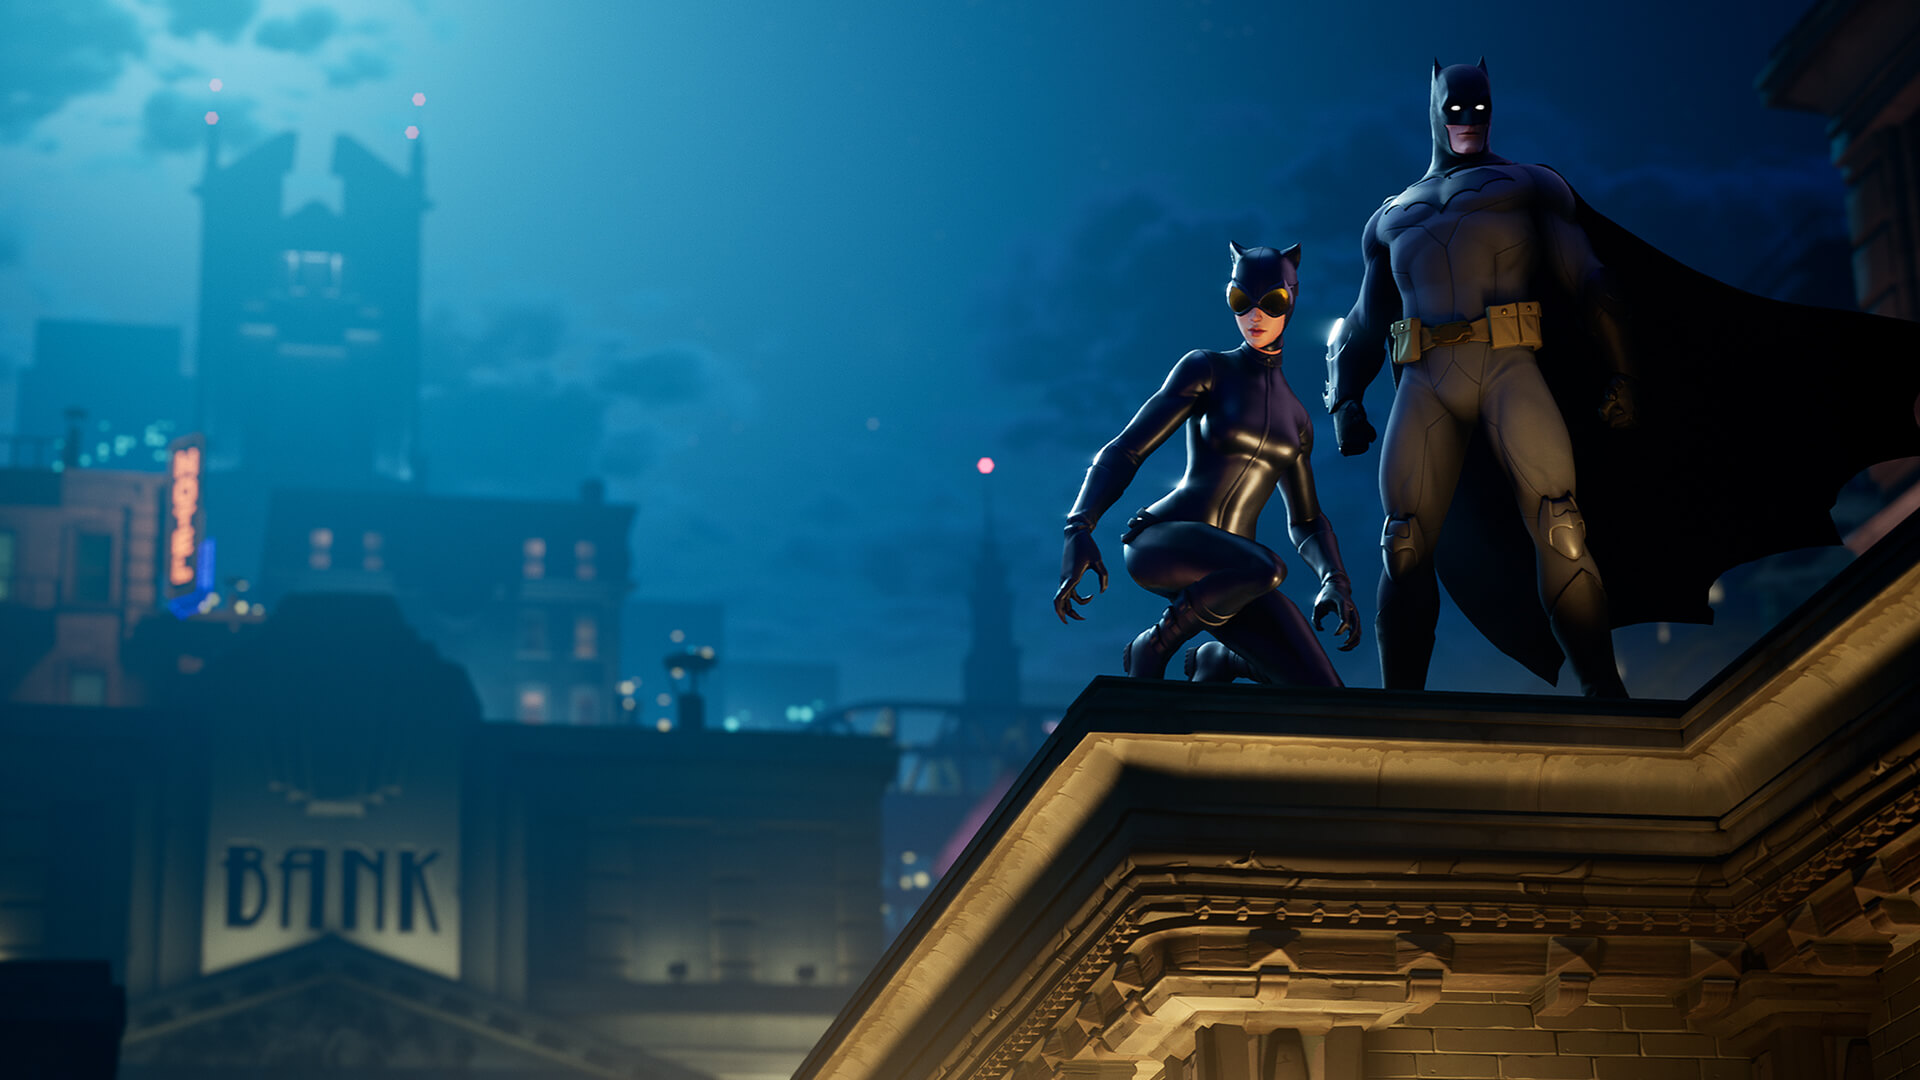 Epic Games | Batman chega ao mundo de Fortnite